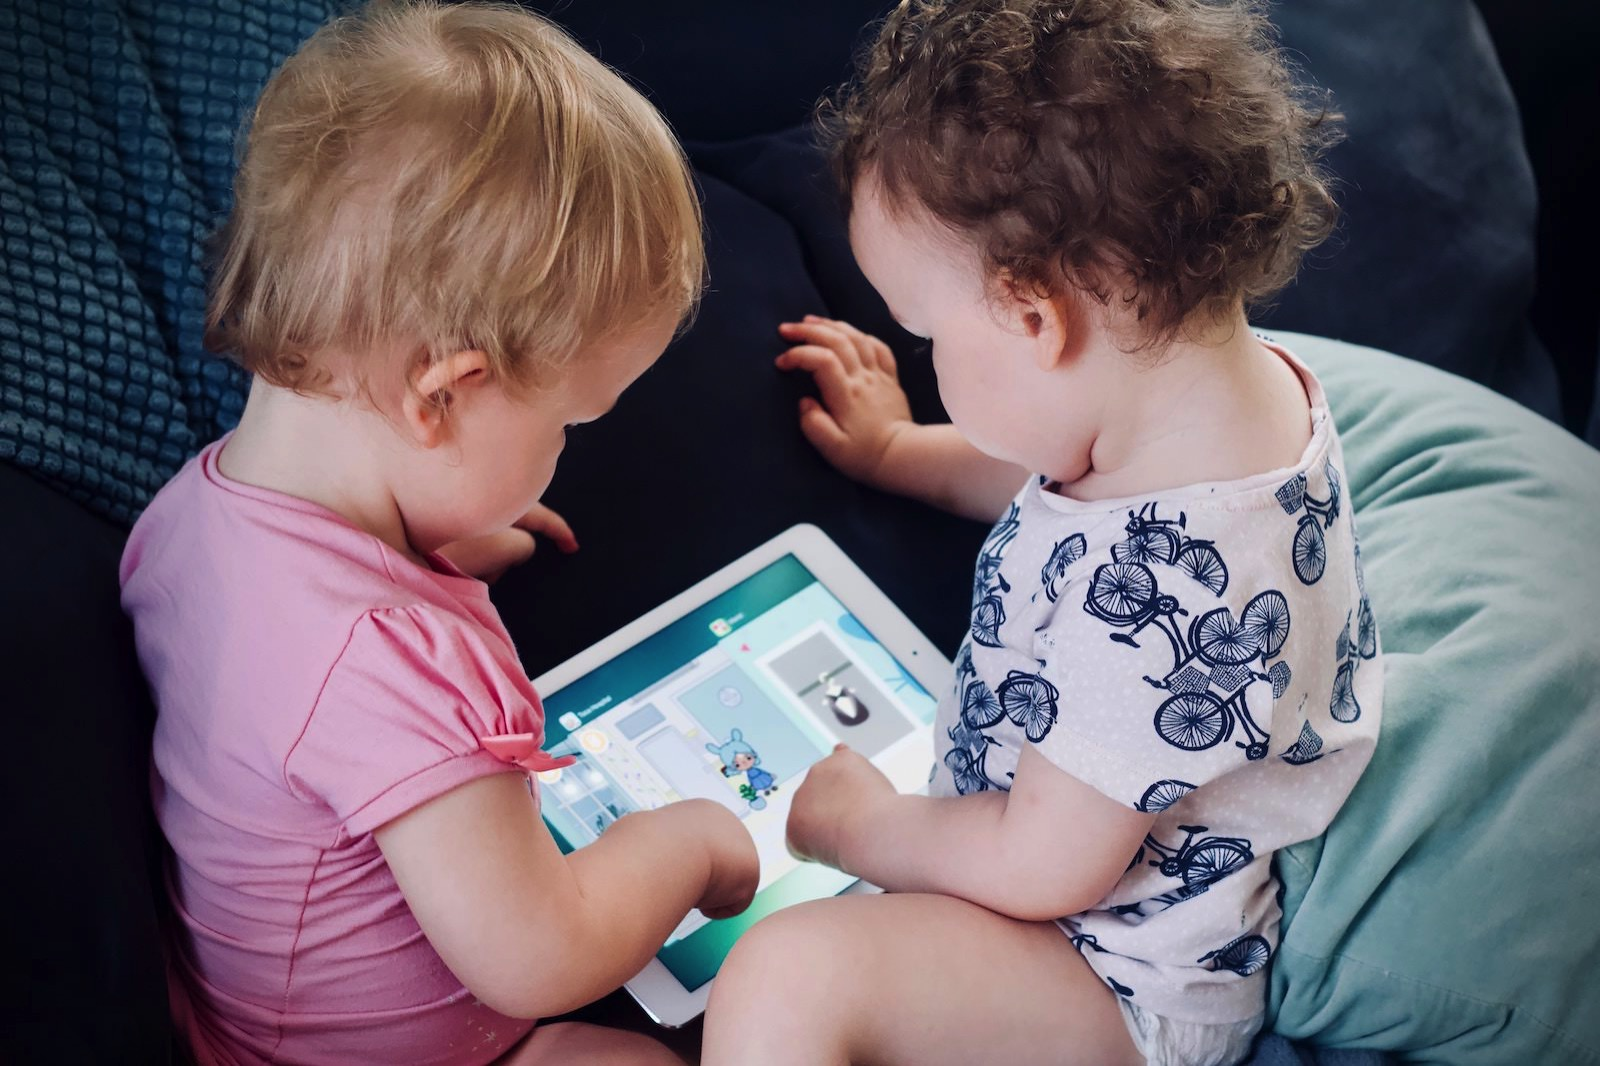 Jelleke vanooteghem 386022 unsplash Kids using an ipad